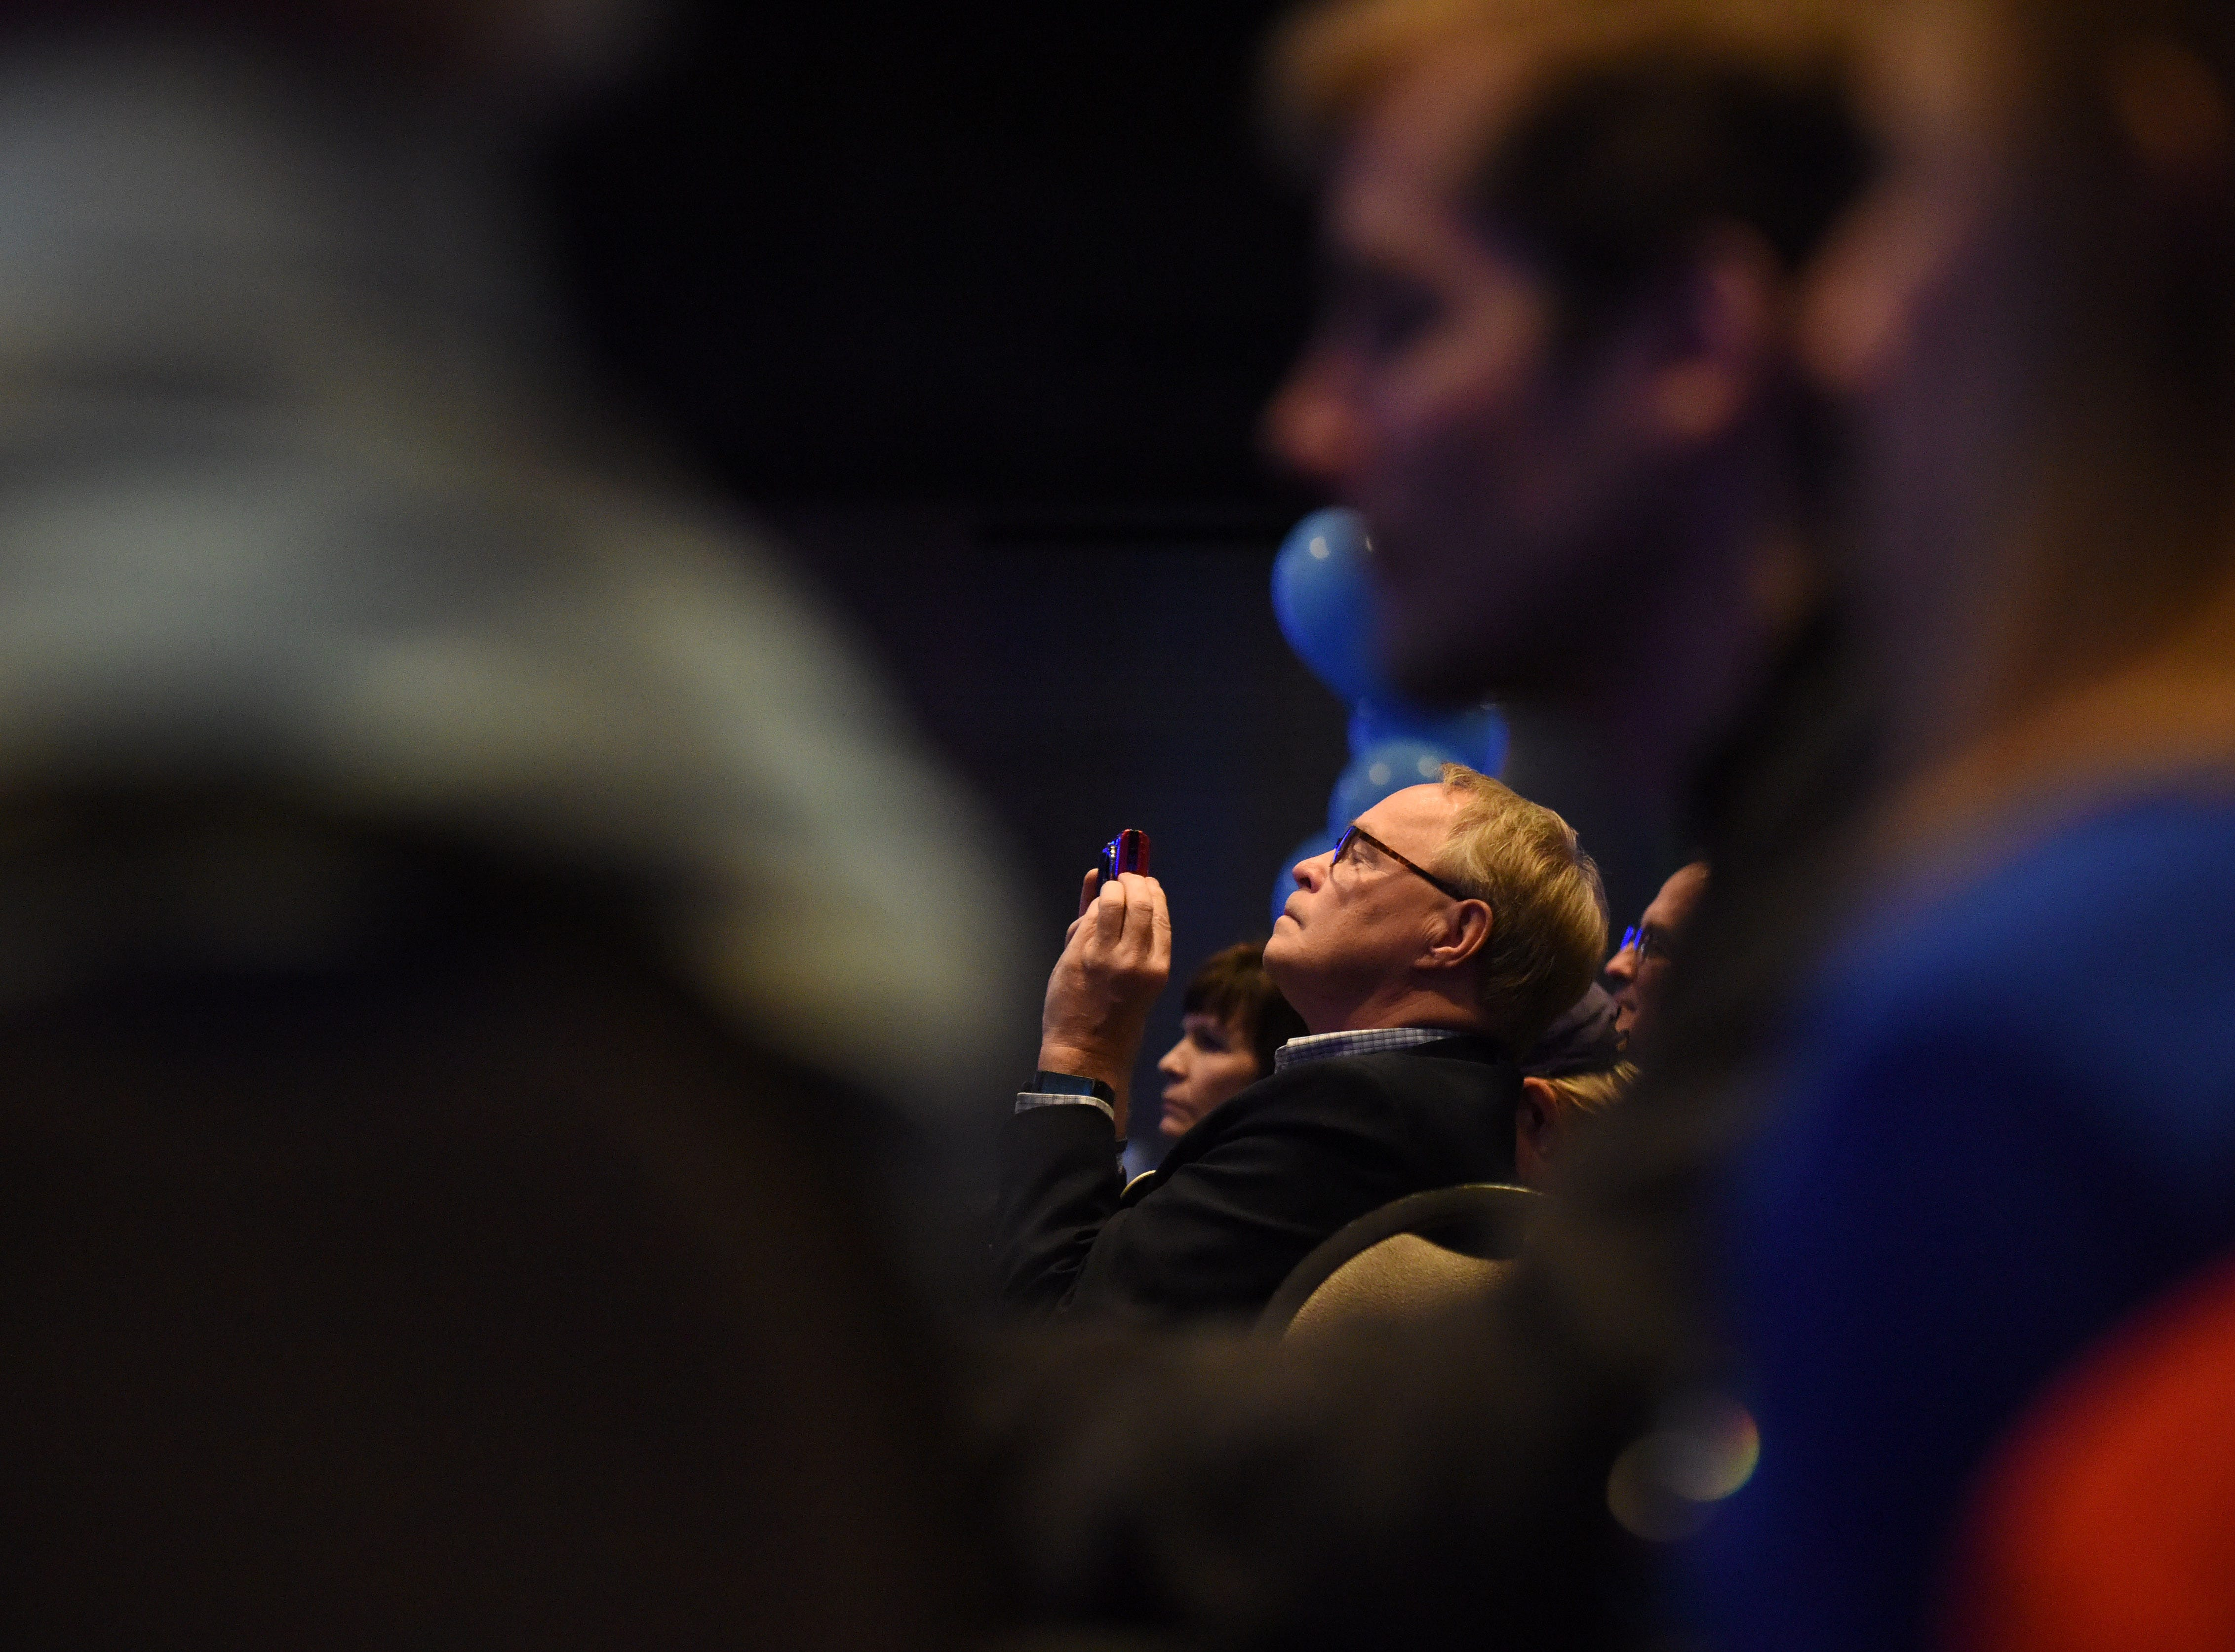 Supporter films Randy Seiler's concession speech at the Democratic election night party, Tuesday, Nov. 6, 2018 at The District in Sioux Falls, S.D.